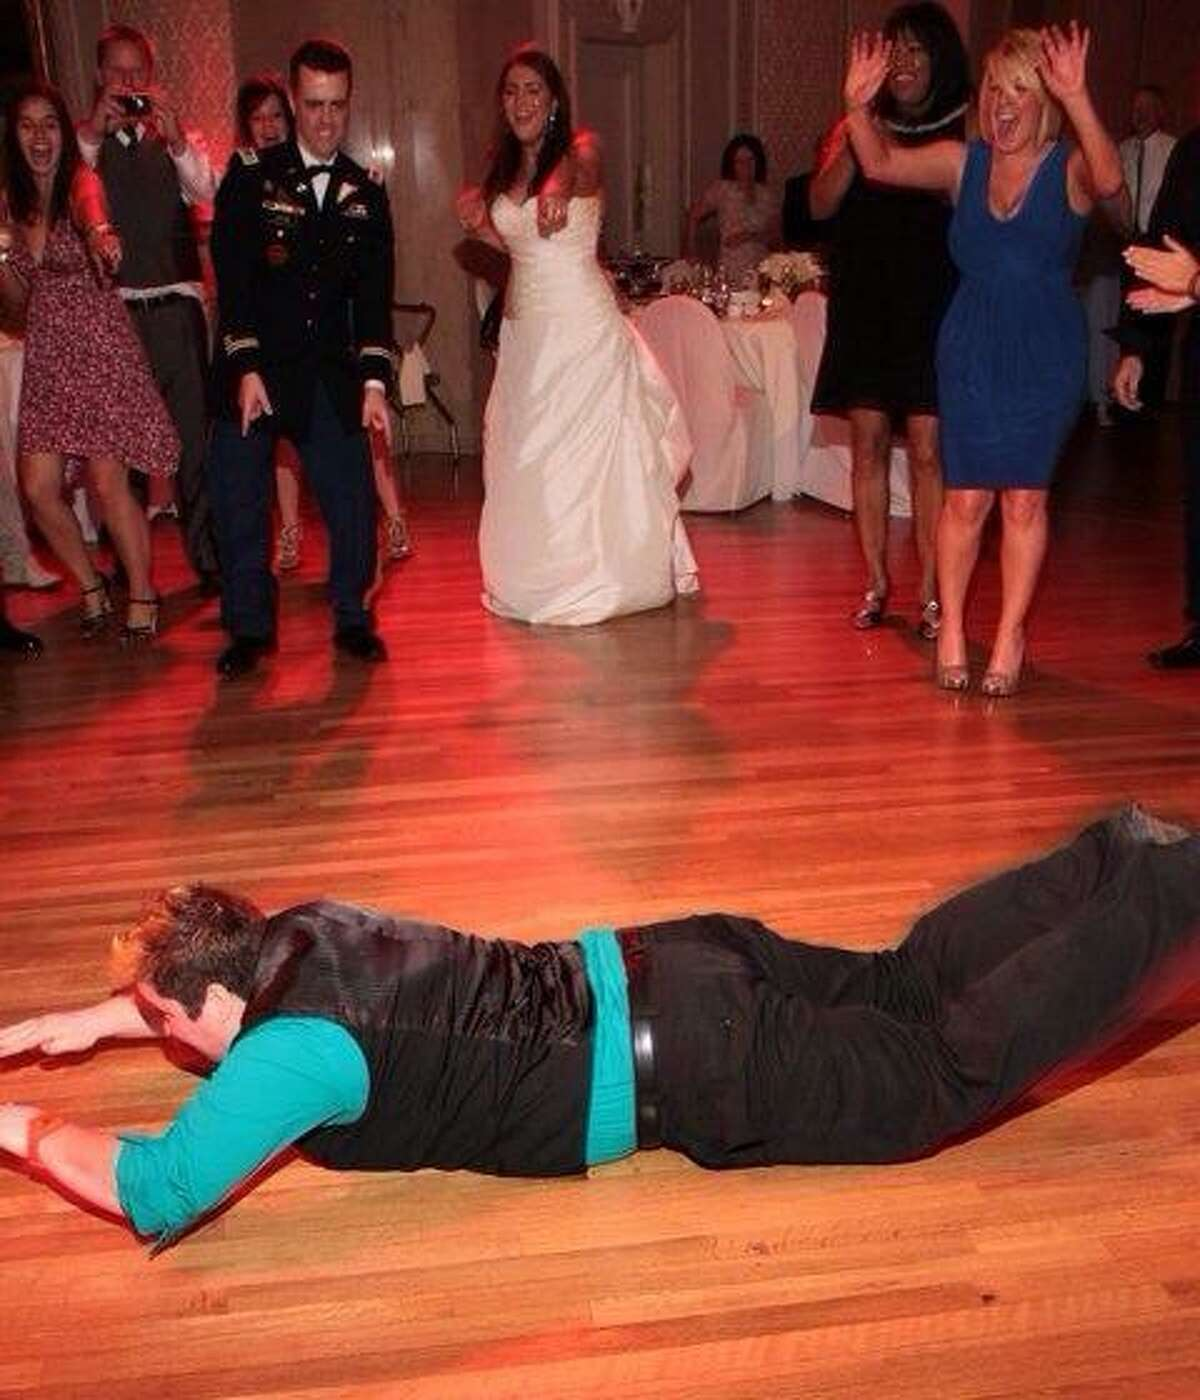 1. My signature dance move at weddings (or any event really) is the